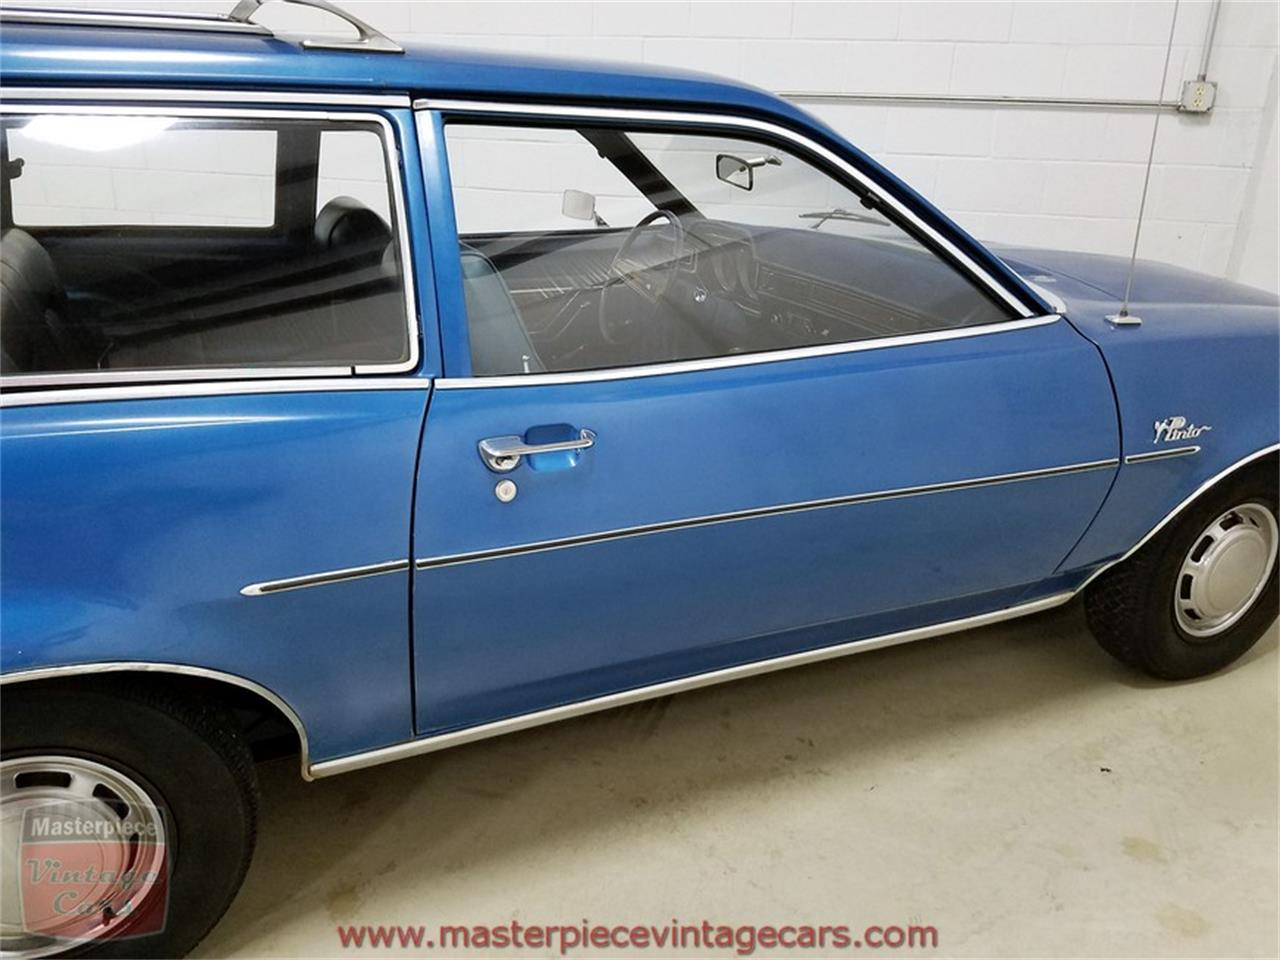 1973 Ford Pinto for sale in Whiteland, IN – photo 5